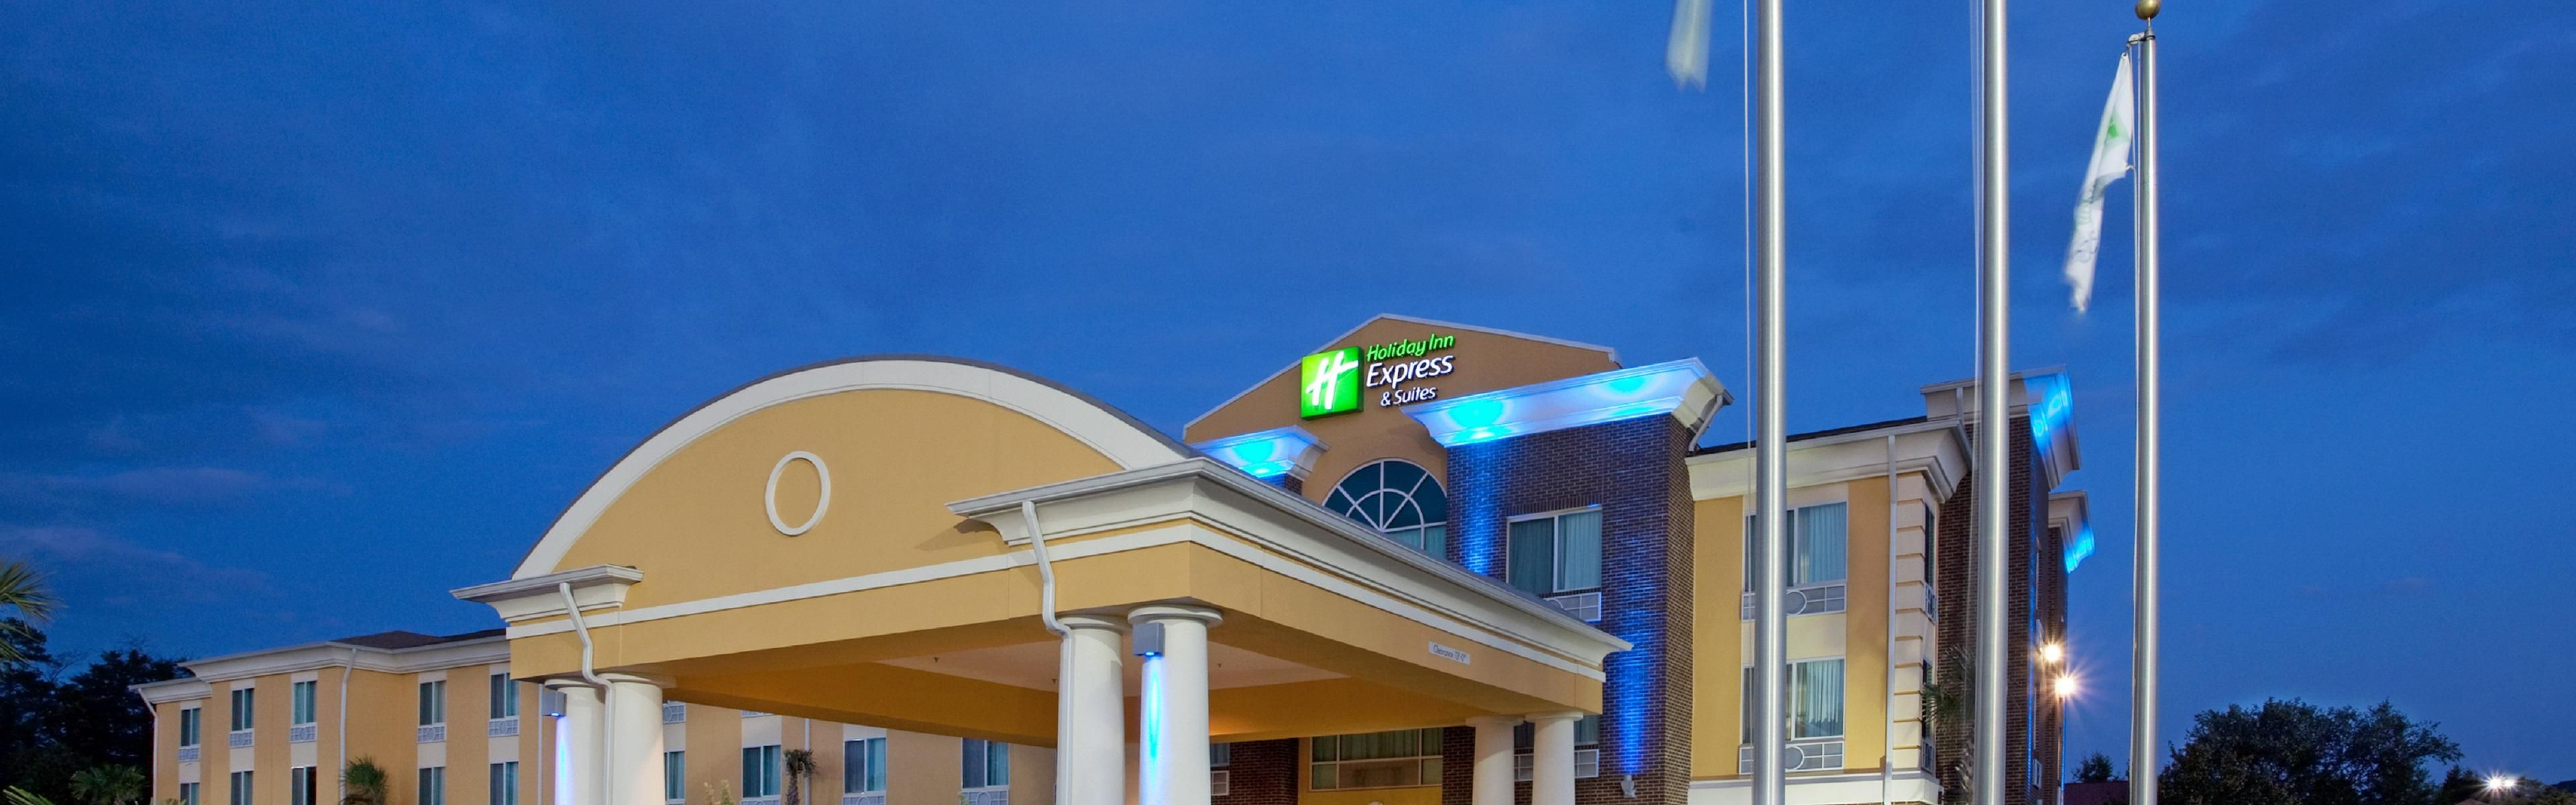 Holiday Inn Express & Suites Anderson-I-85 (Hwy 76, Ex 19b) image 0